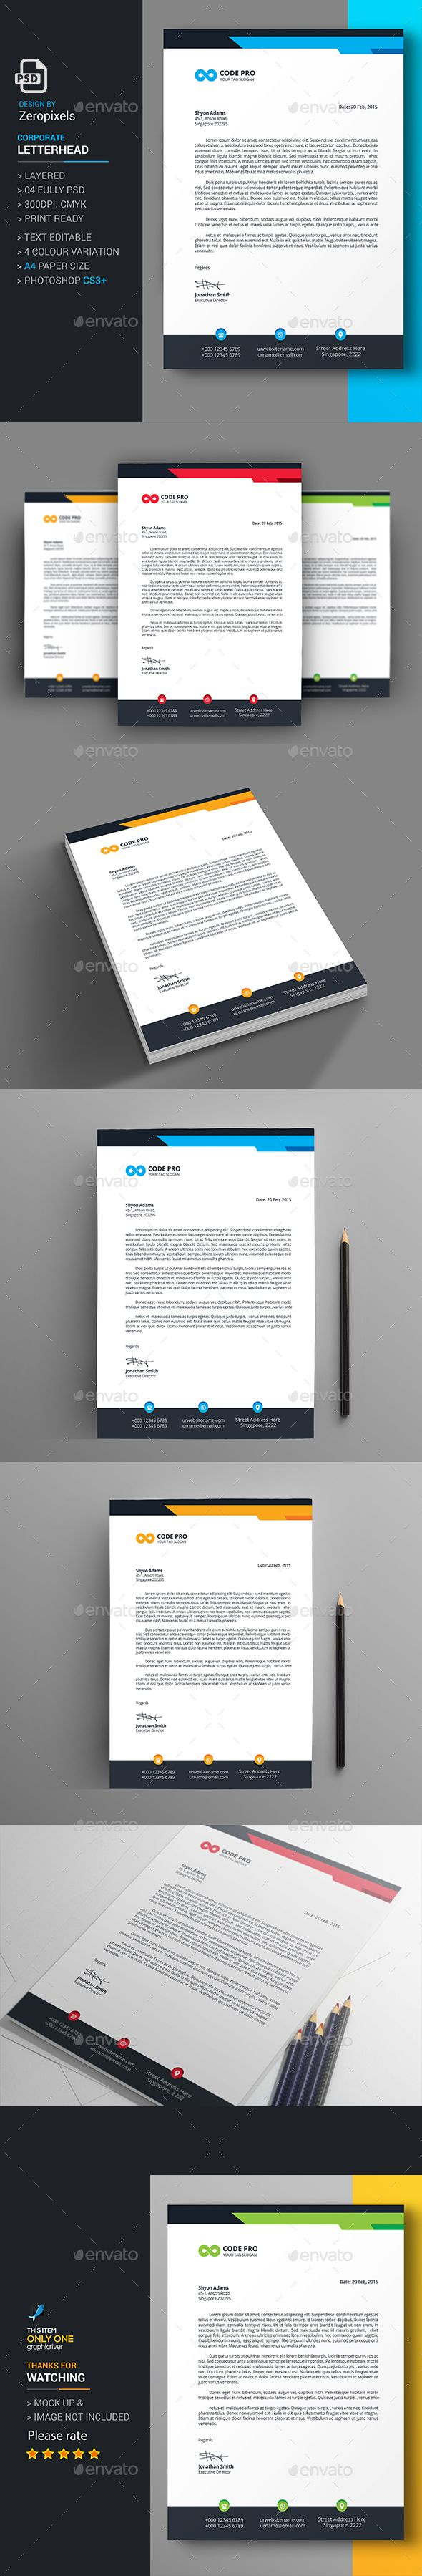 letterhead design template stationery print template psd download here http - Letterhead Design Ideas